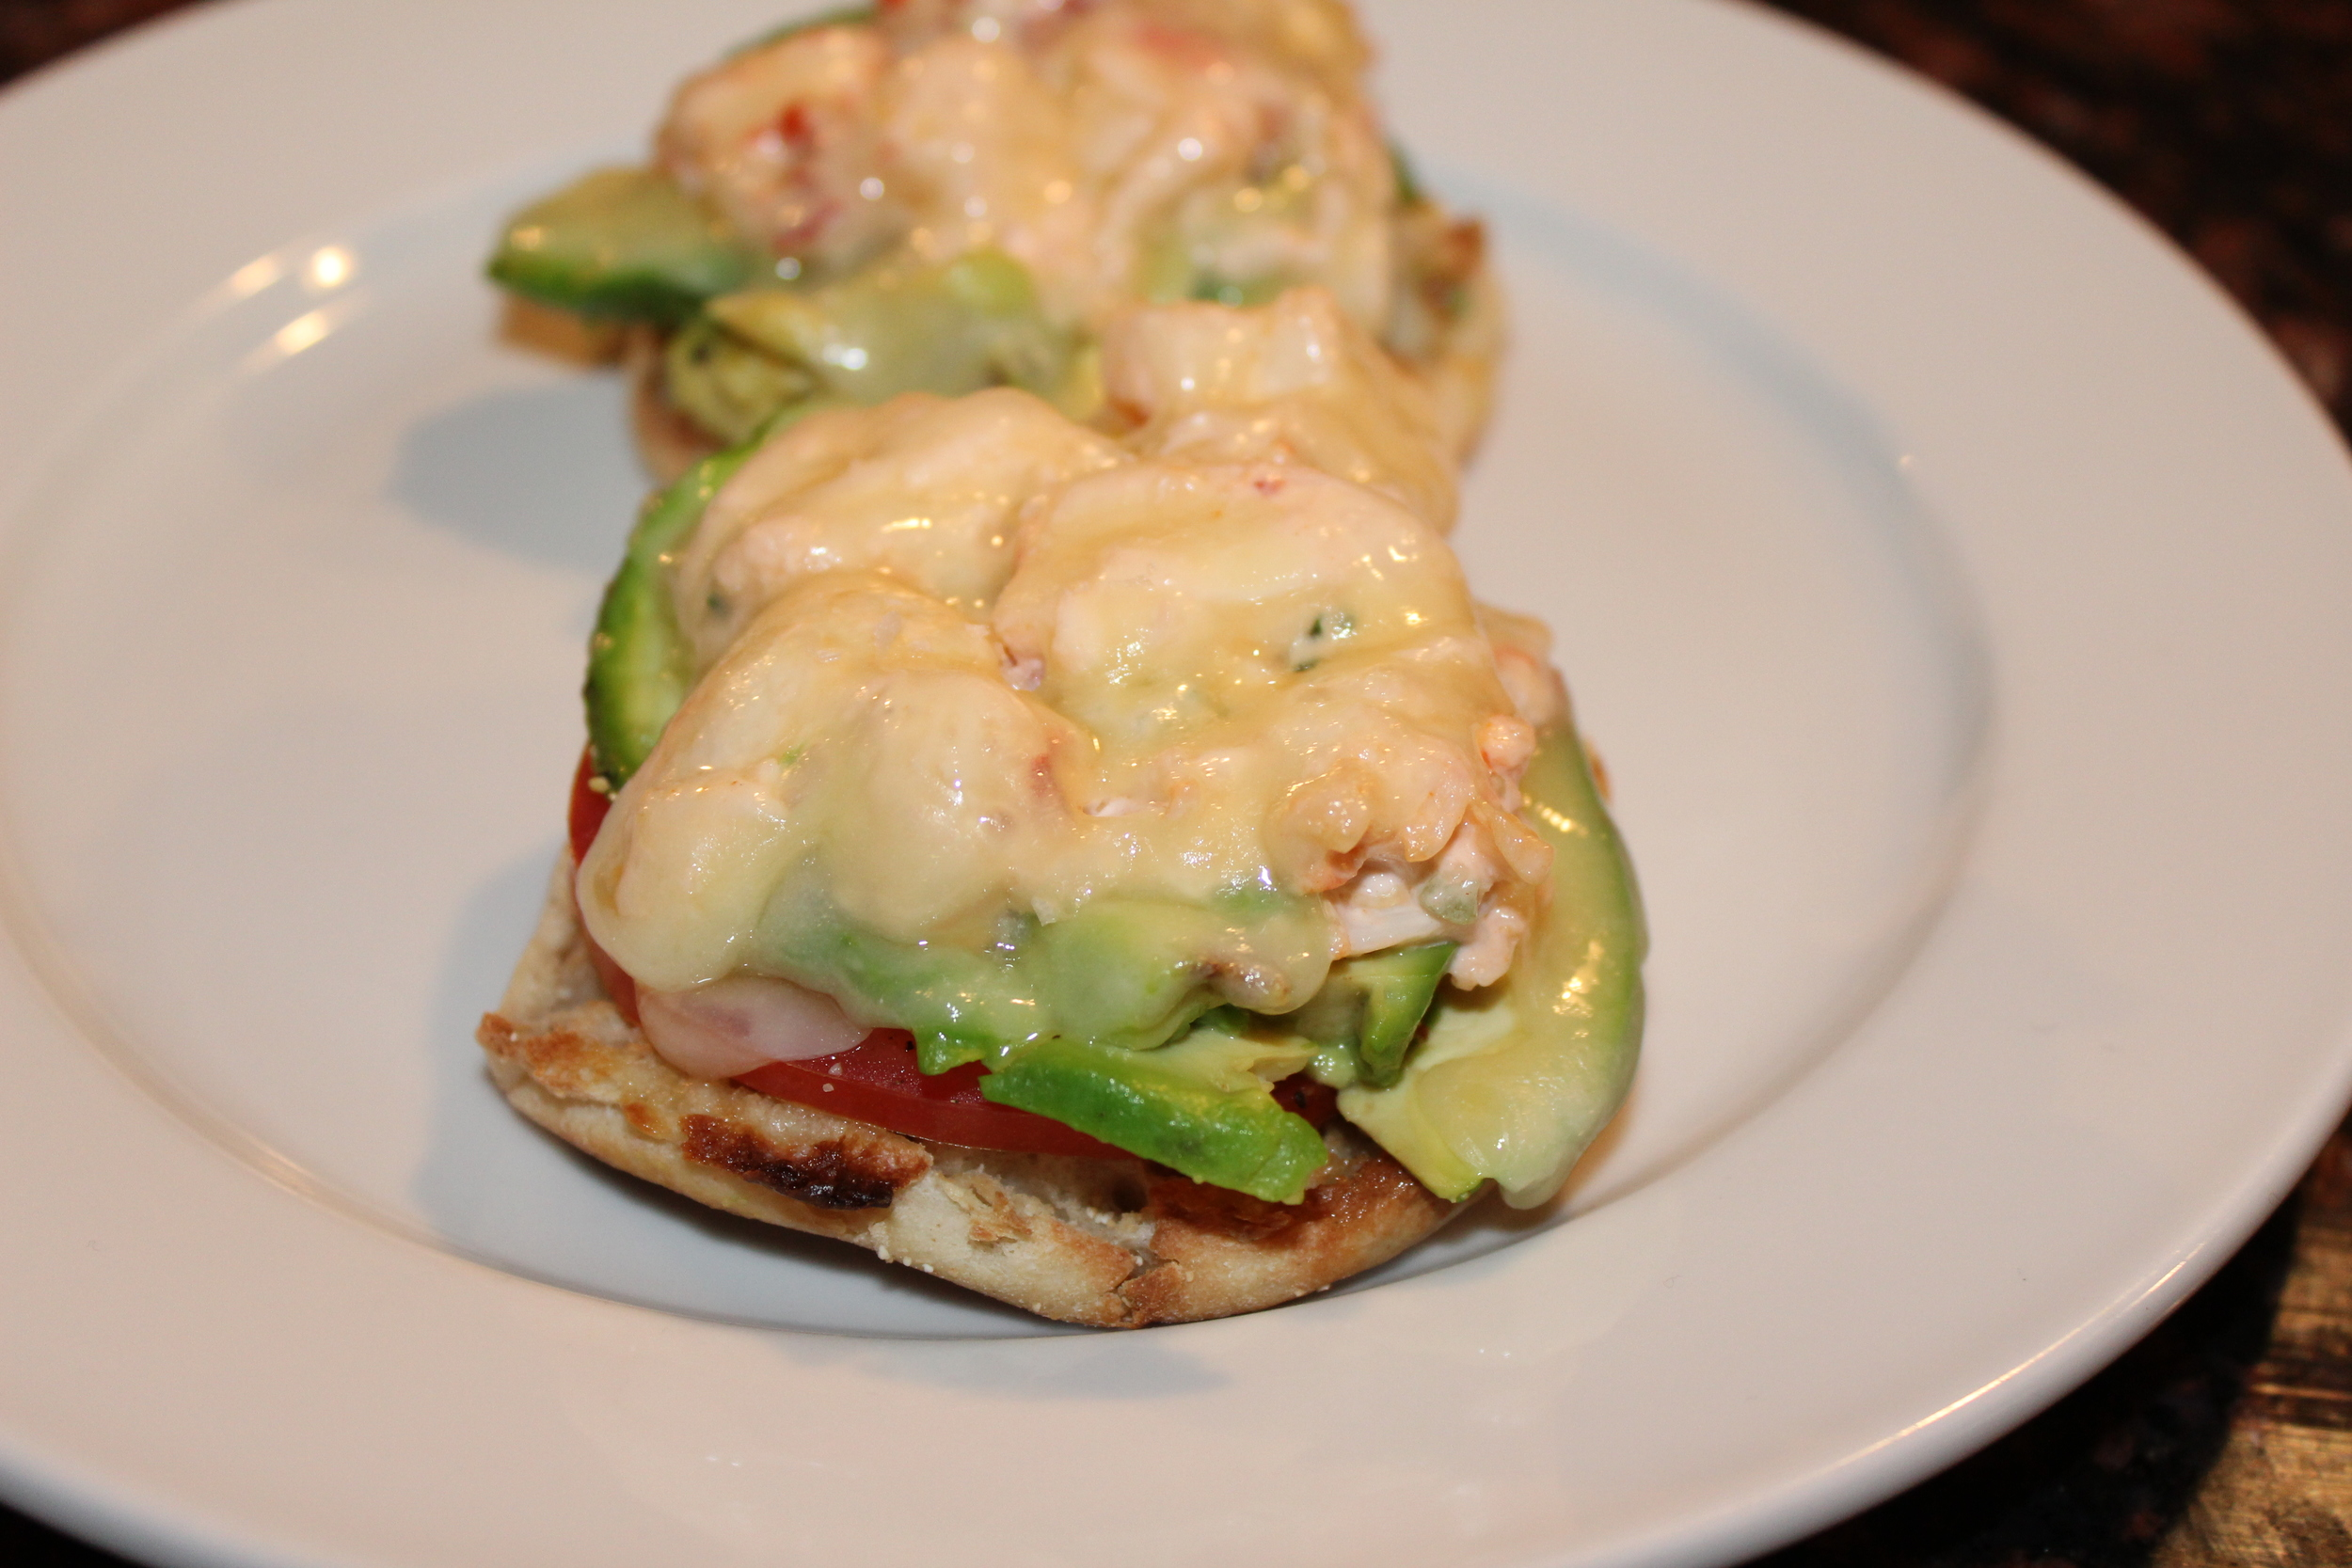 Lobster melts with avocado and tomato